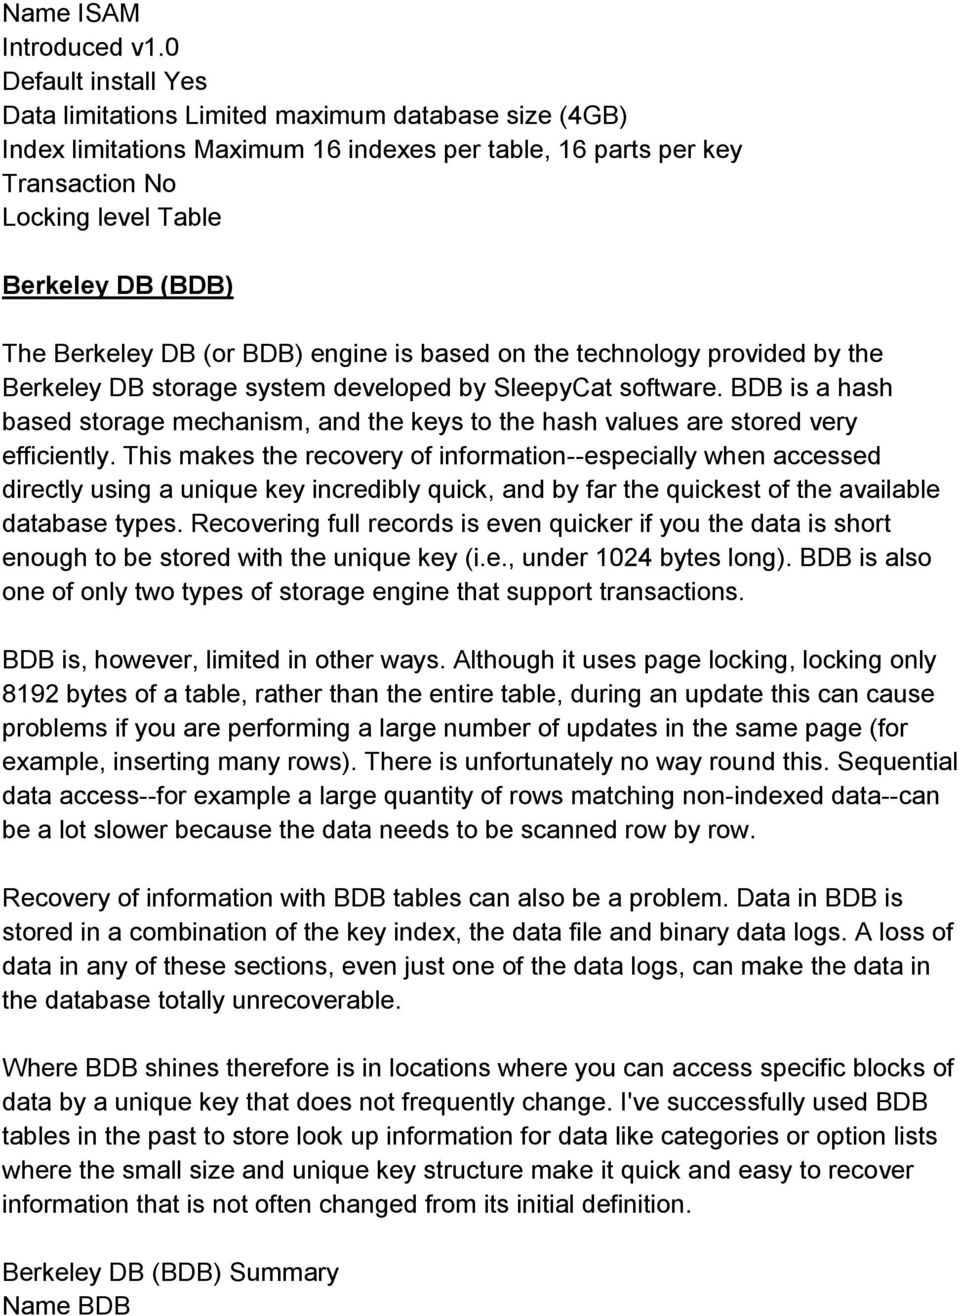 BDB) engine is based on the technology provided by the Berkeley DB storage system developed by SleepyCat software.